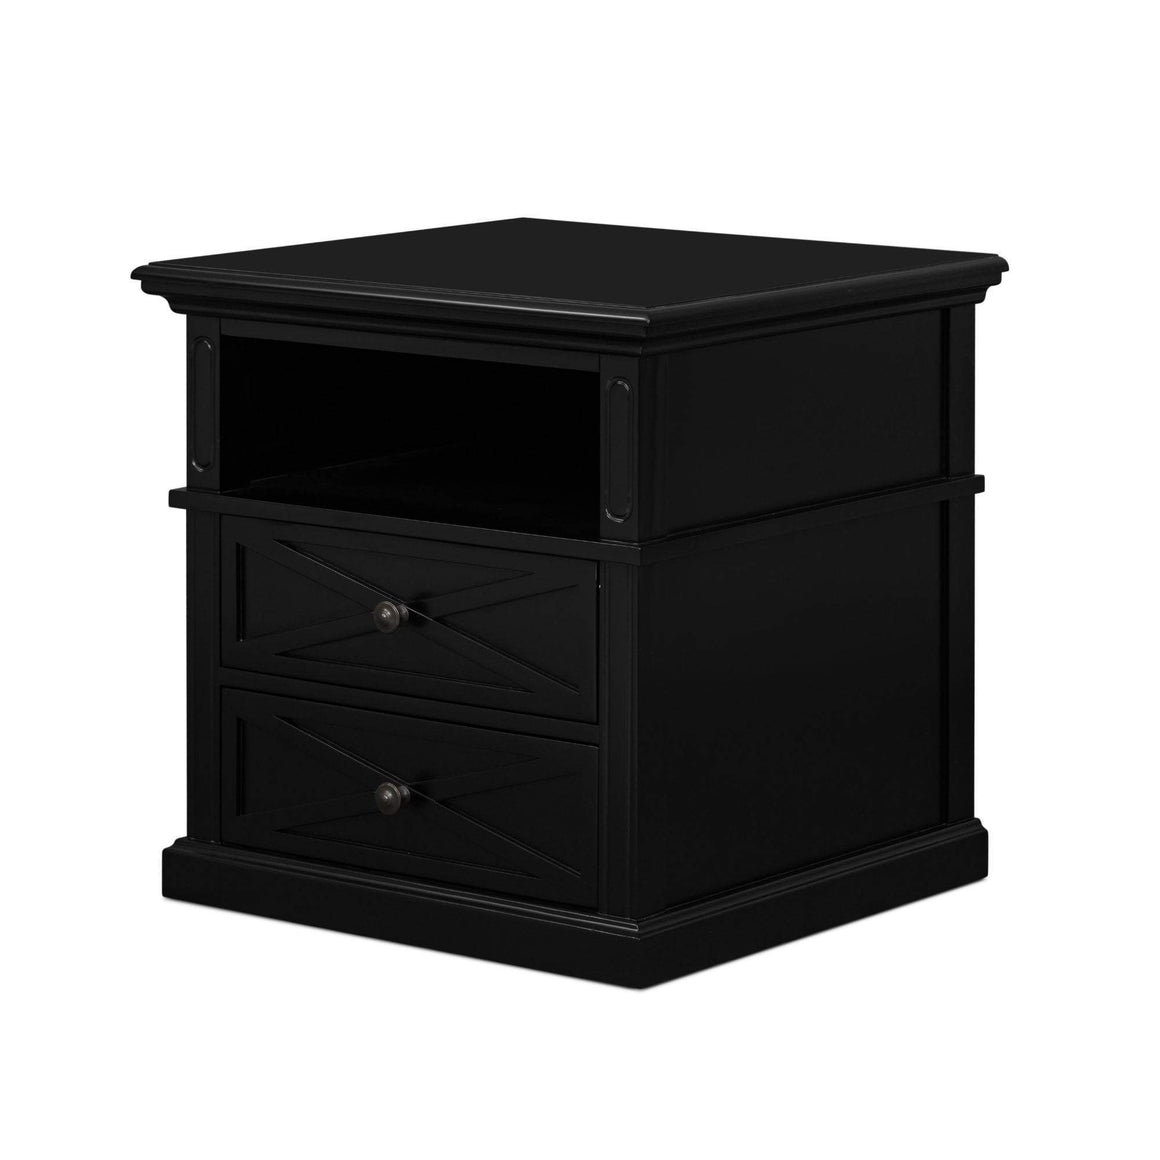 SORRENTO BLK LARGE 2 DRAW BEDSIDE TABLE